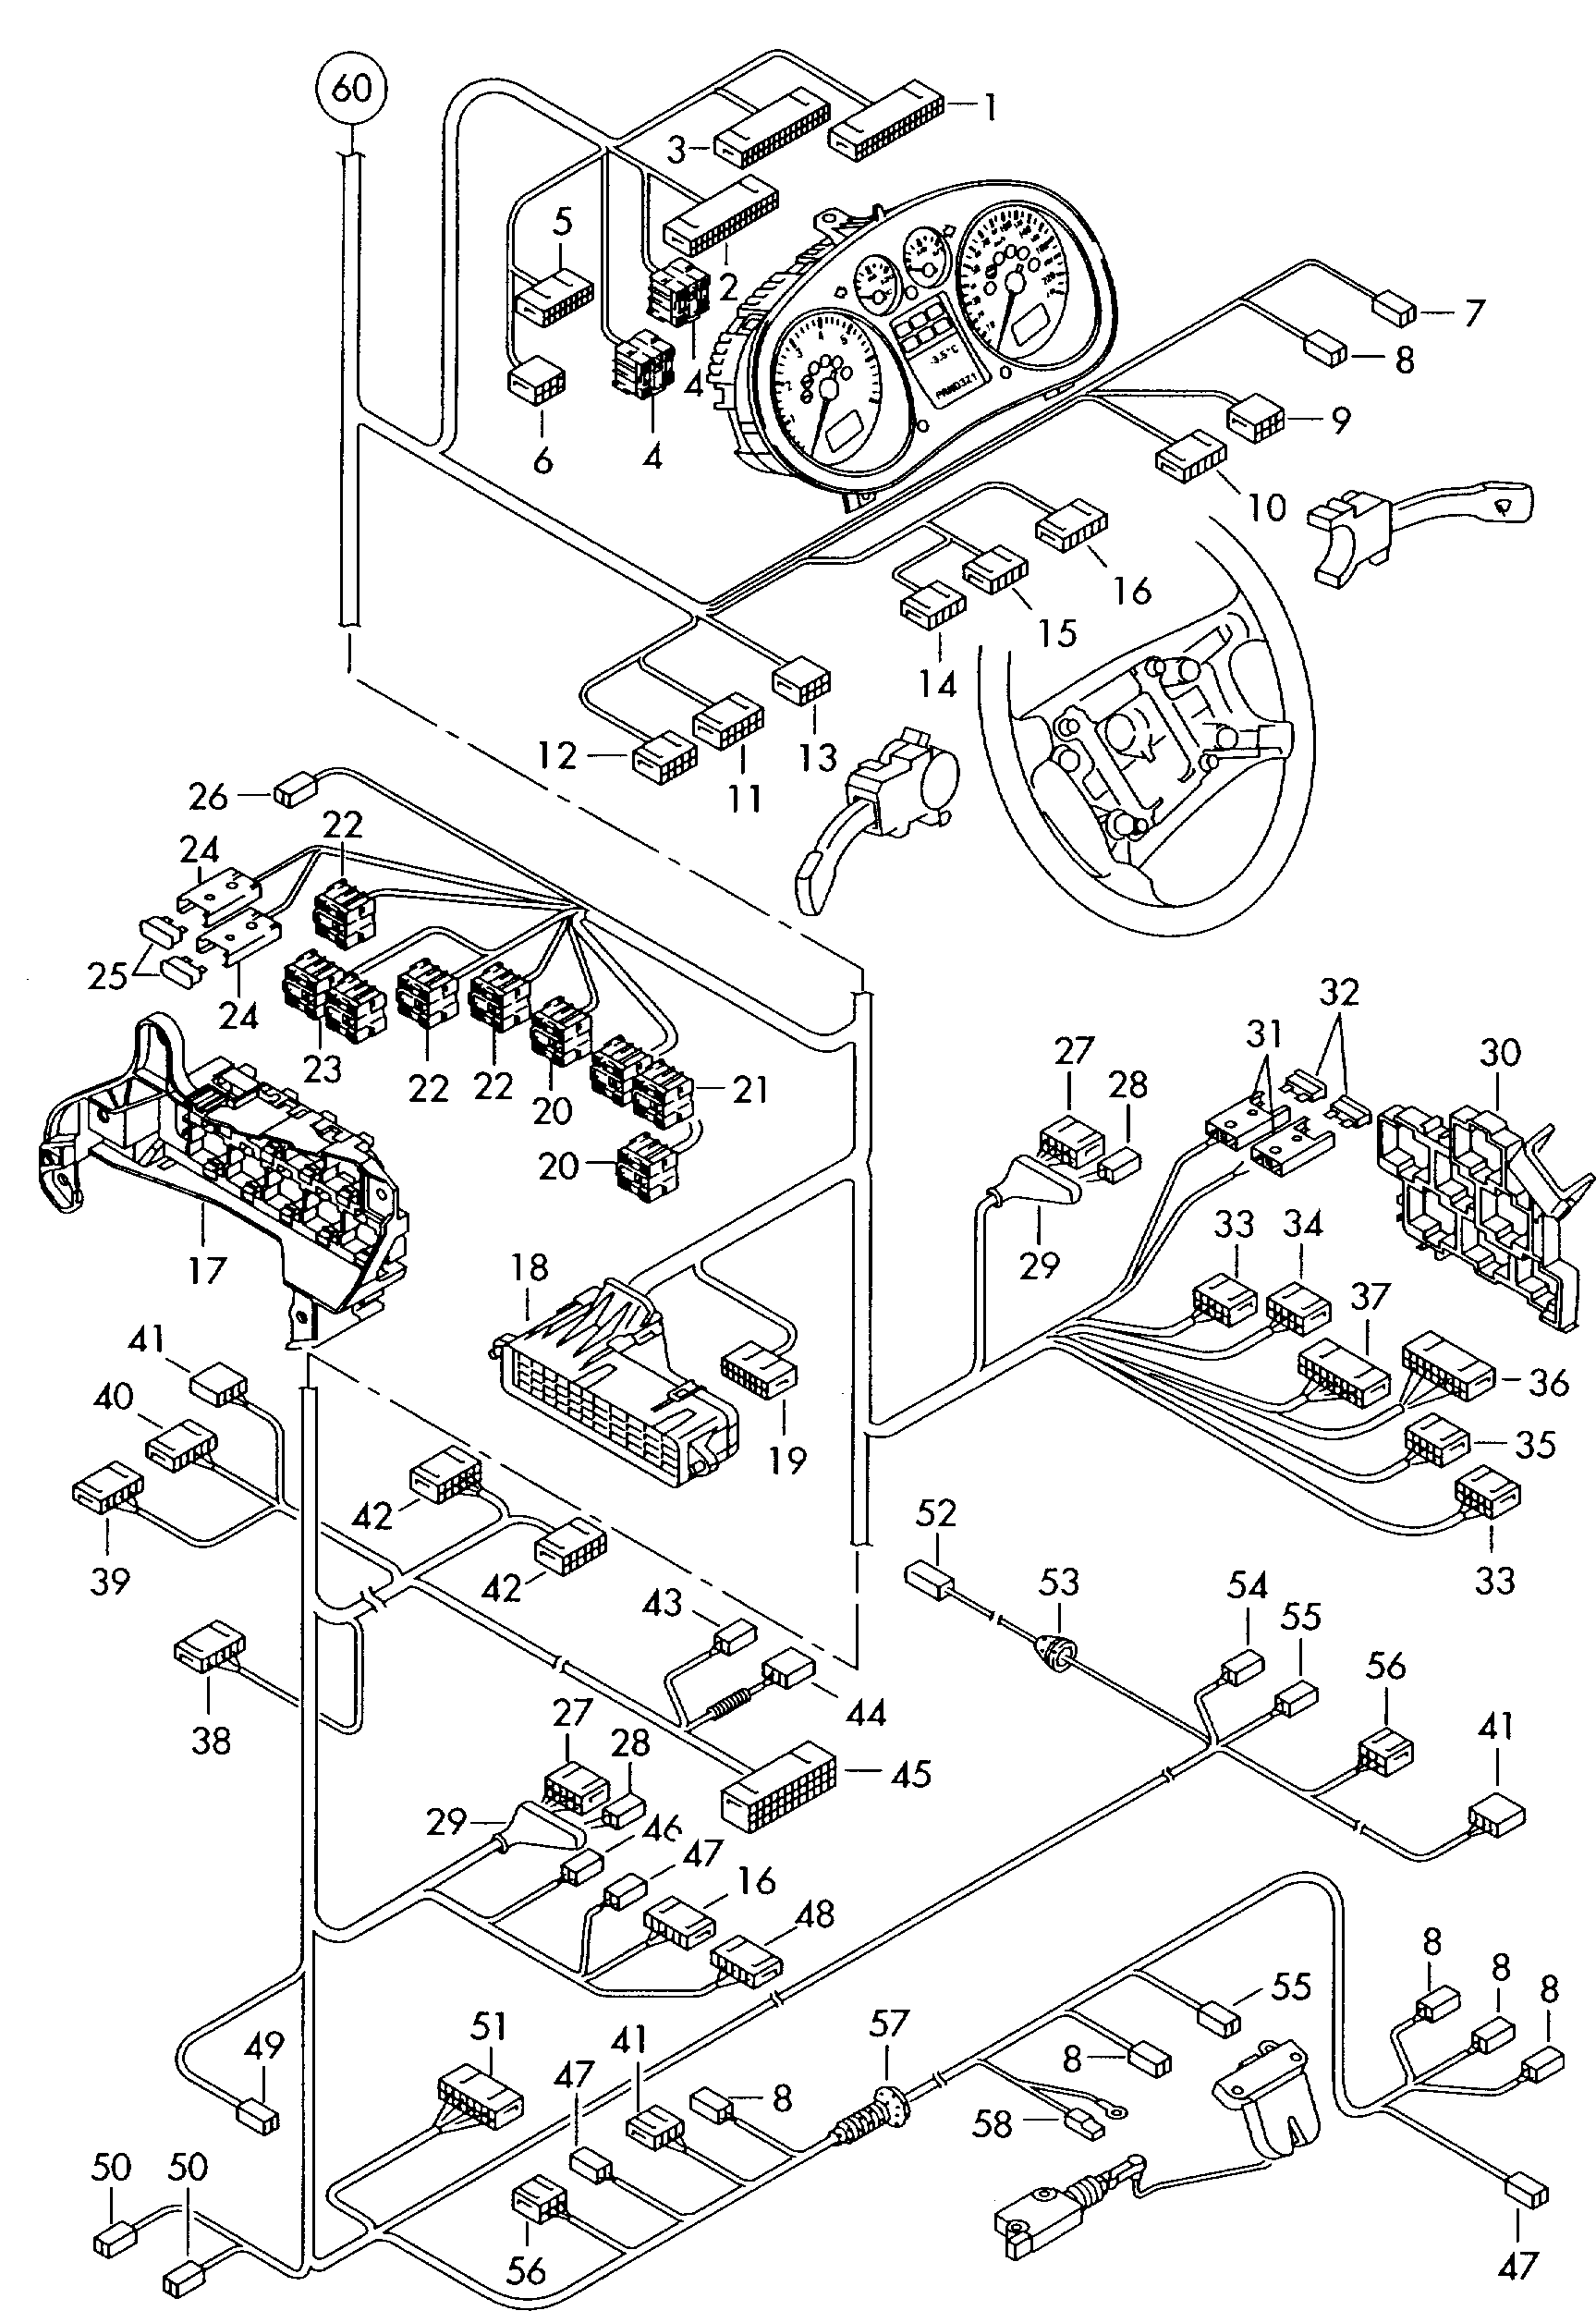 hight resolution of audi a2 2000 2005 individual parts central wiring set u003e vag audi a2 central locking wiring diagram